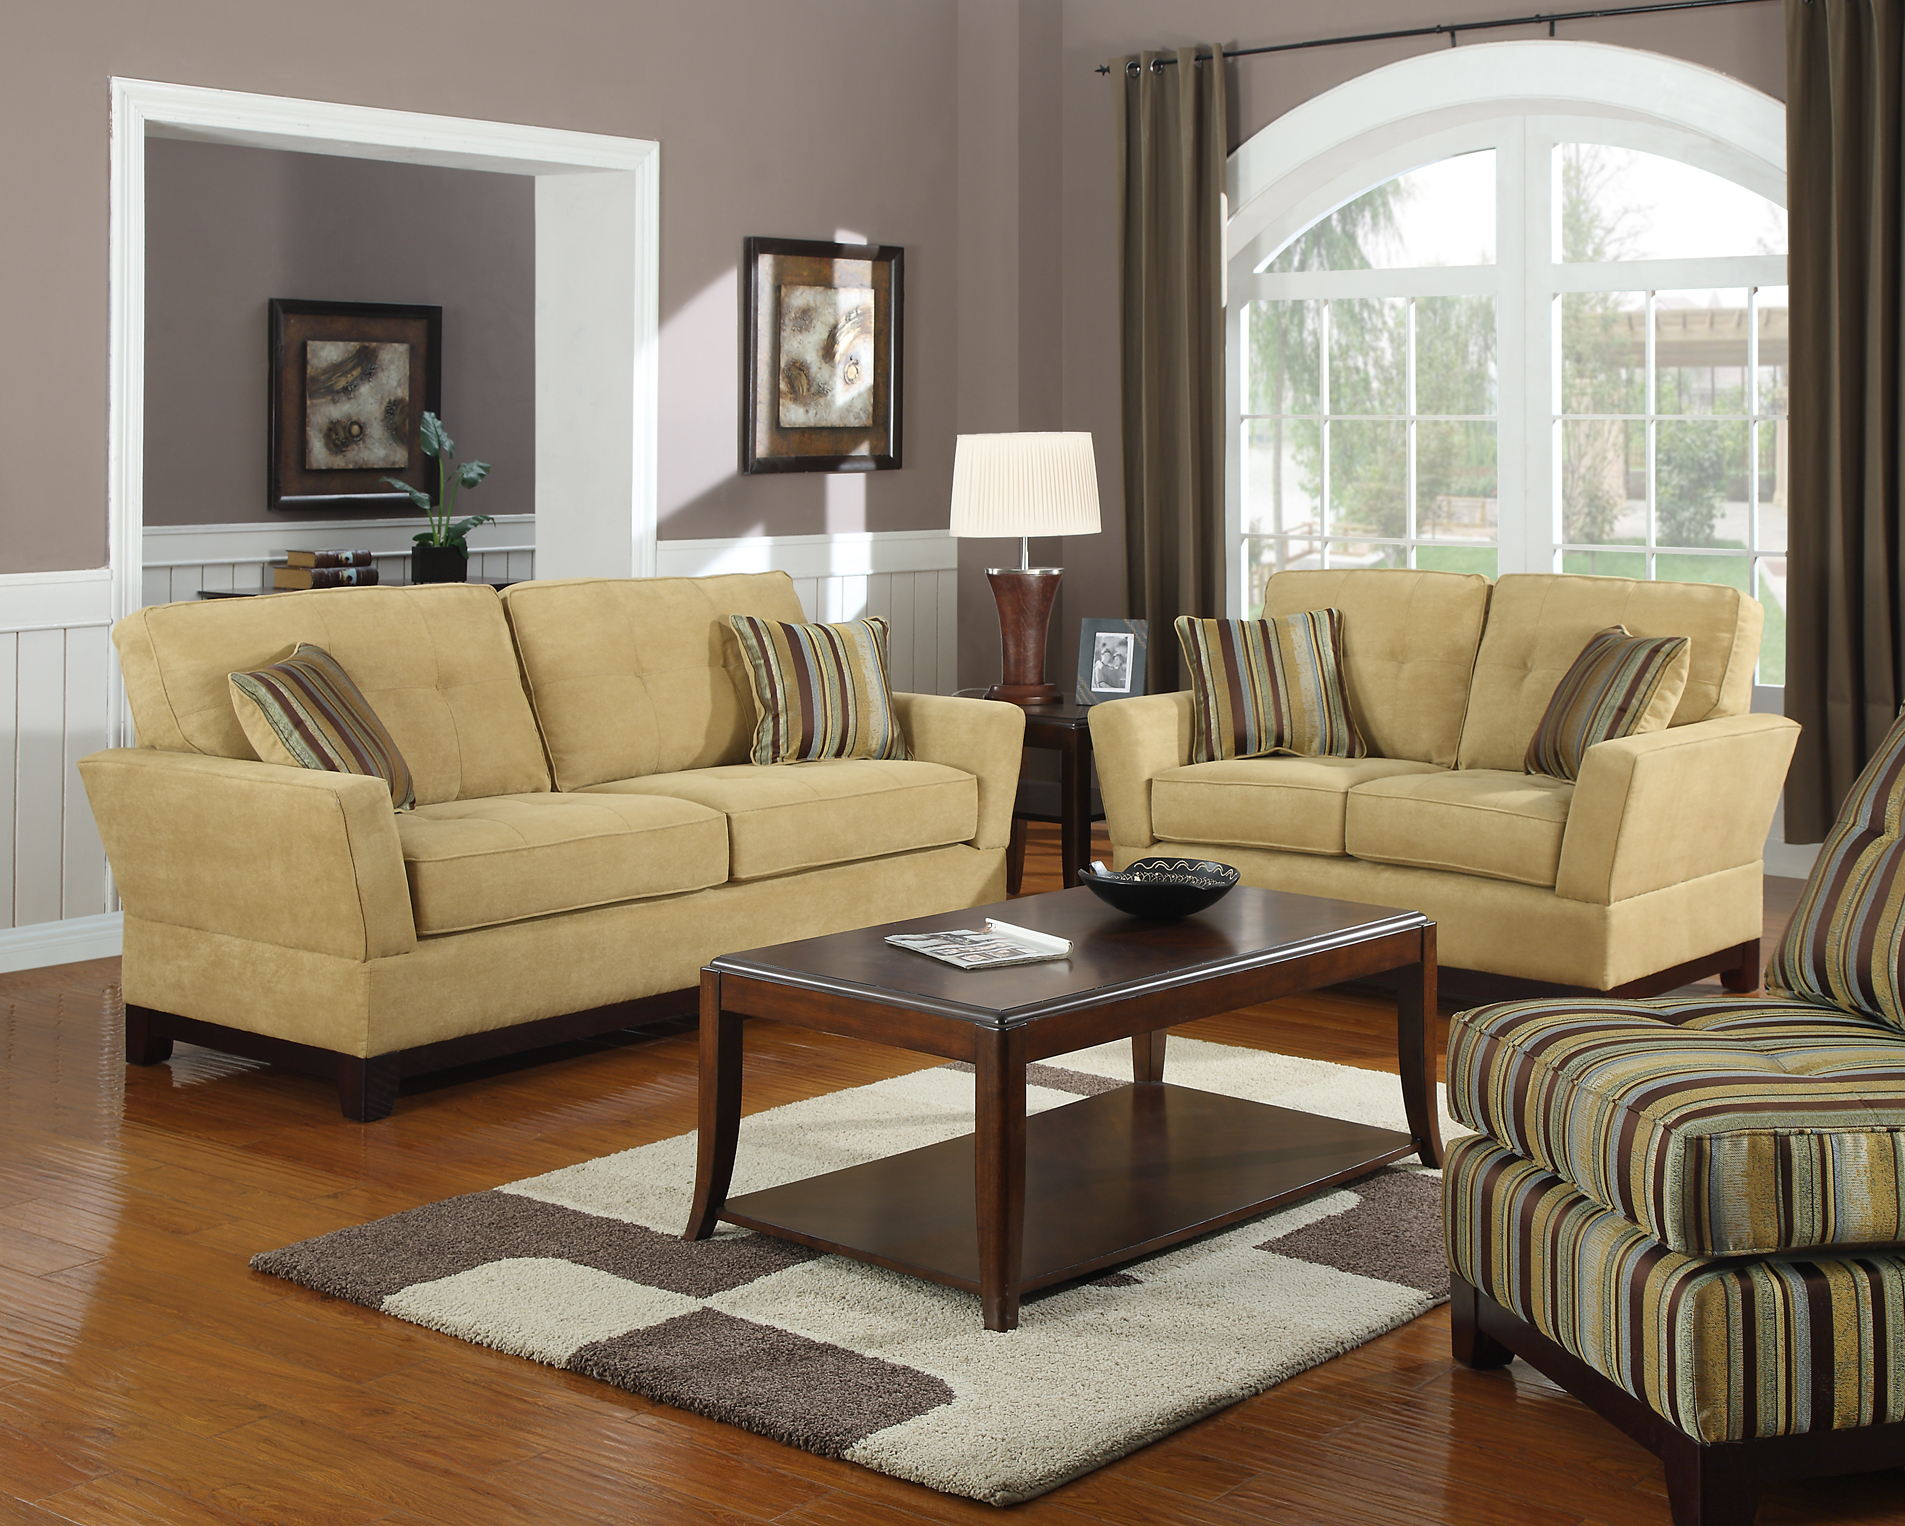 Image of: Small Living Room Decorating Ideas Decor